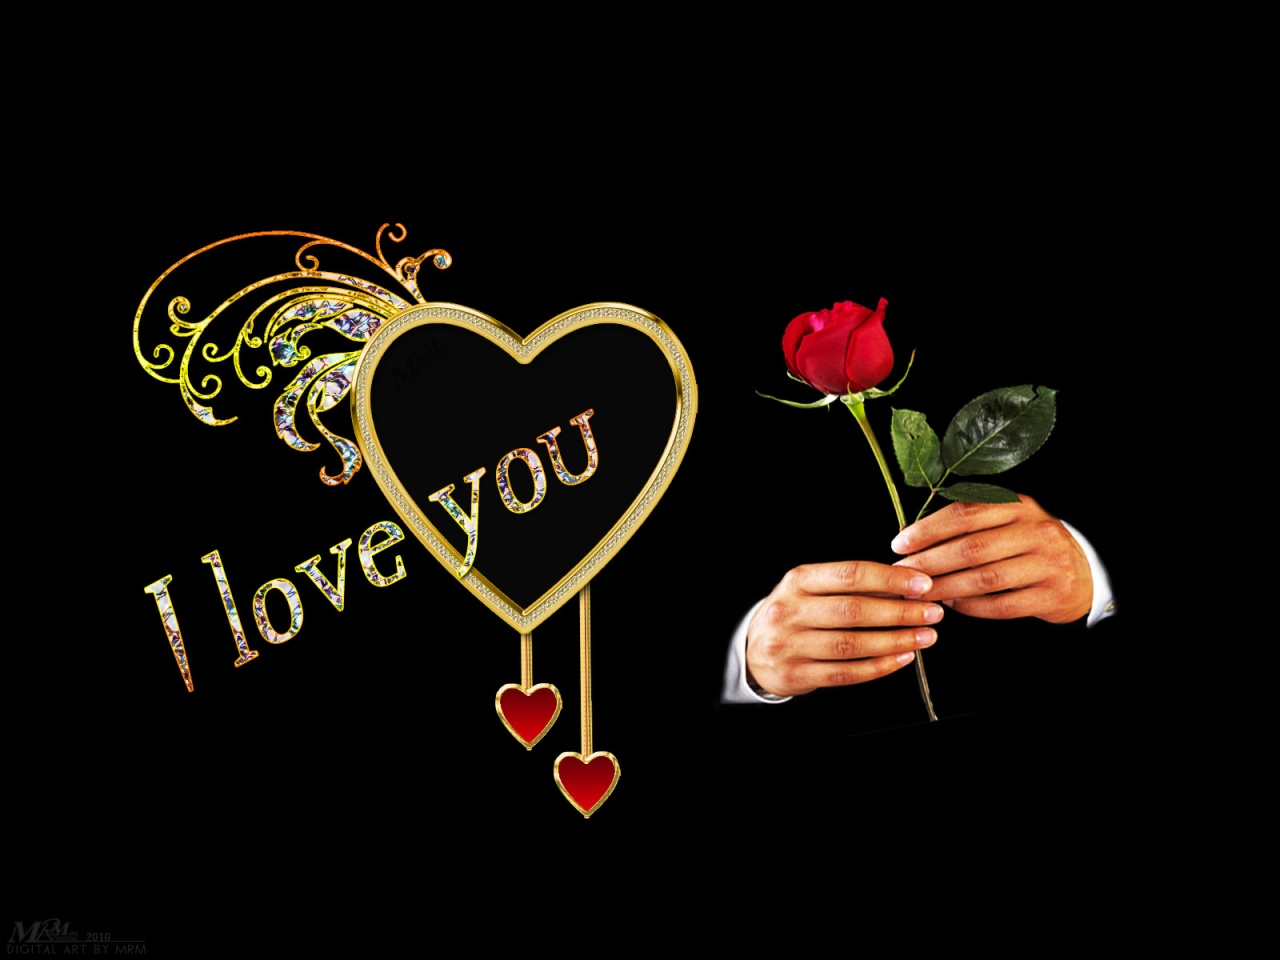 Wallpaper I Love You 3d : stratfordonavon: wallpaper i love you